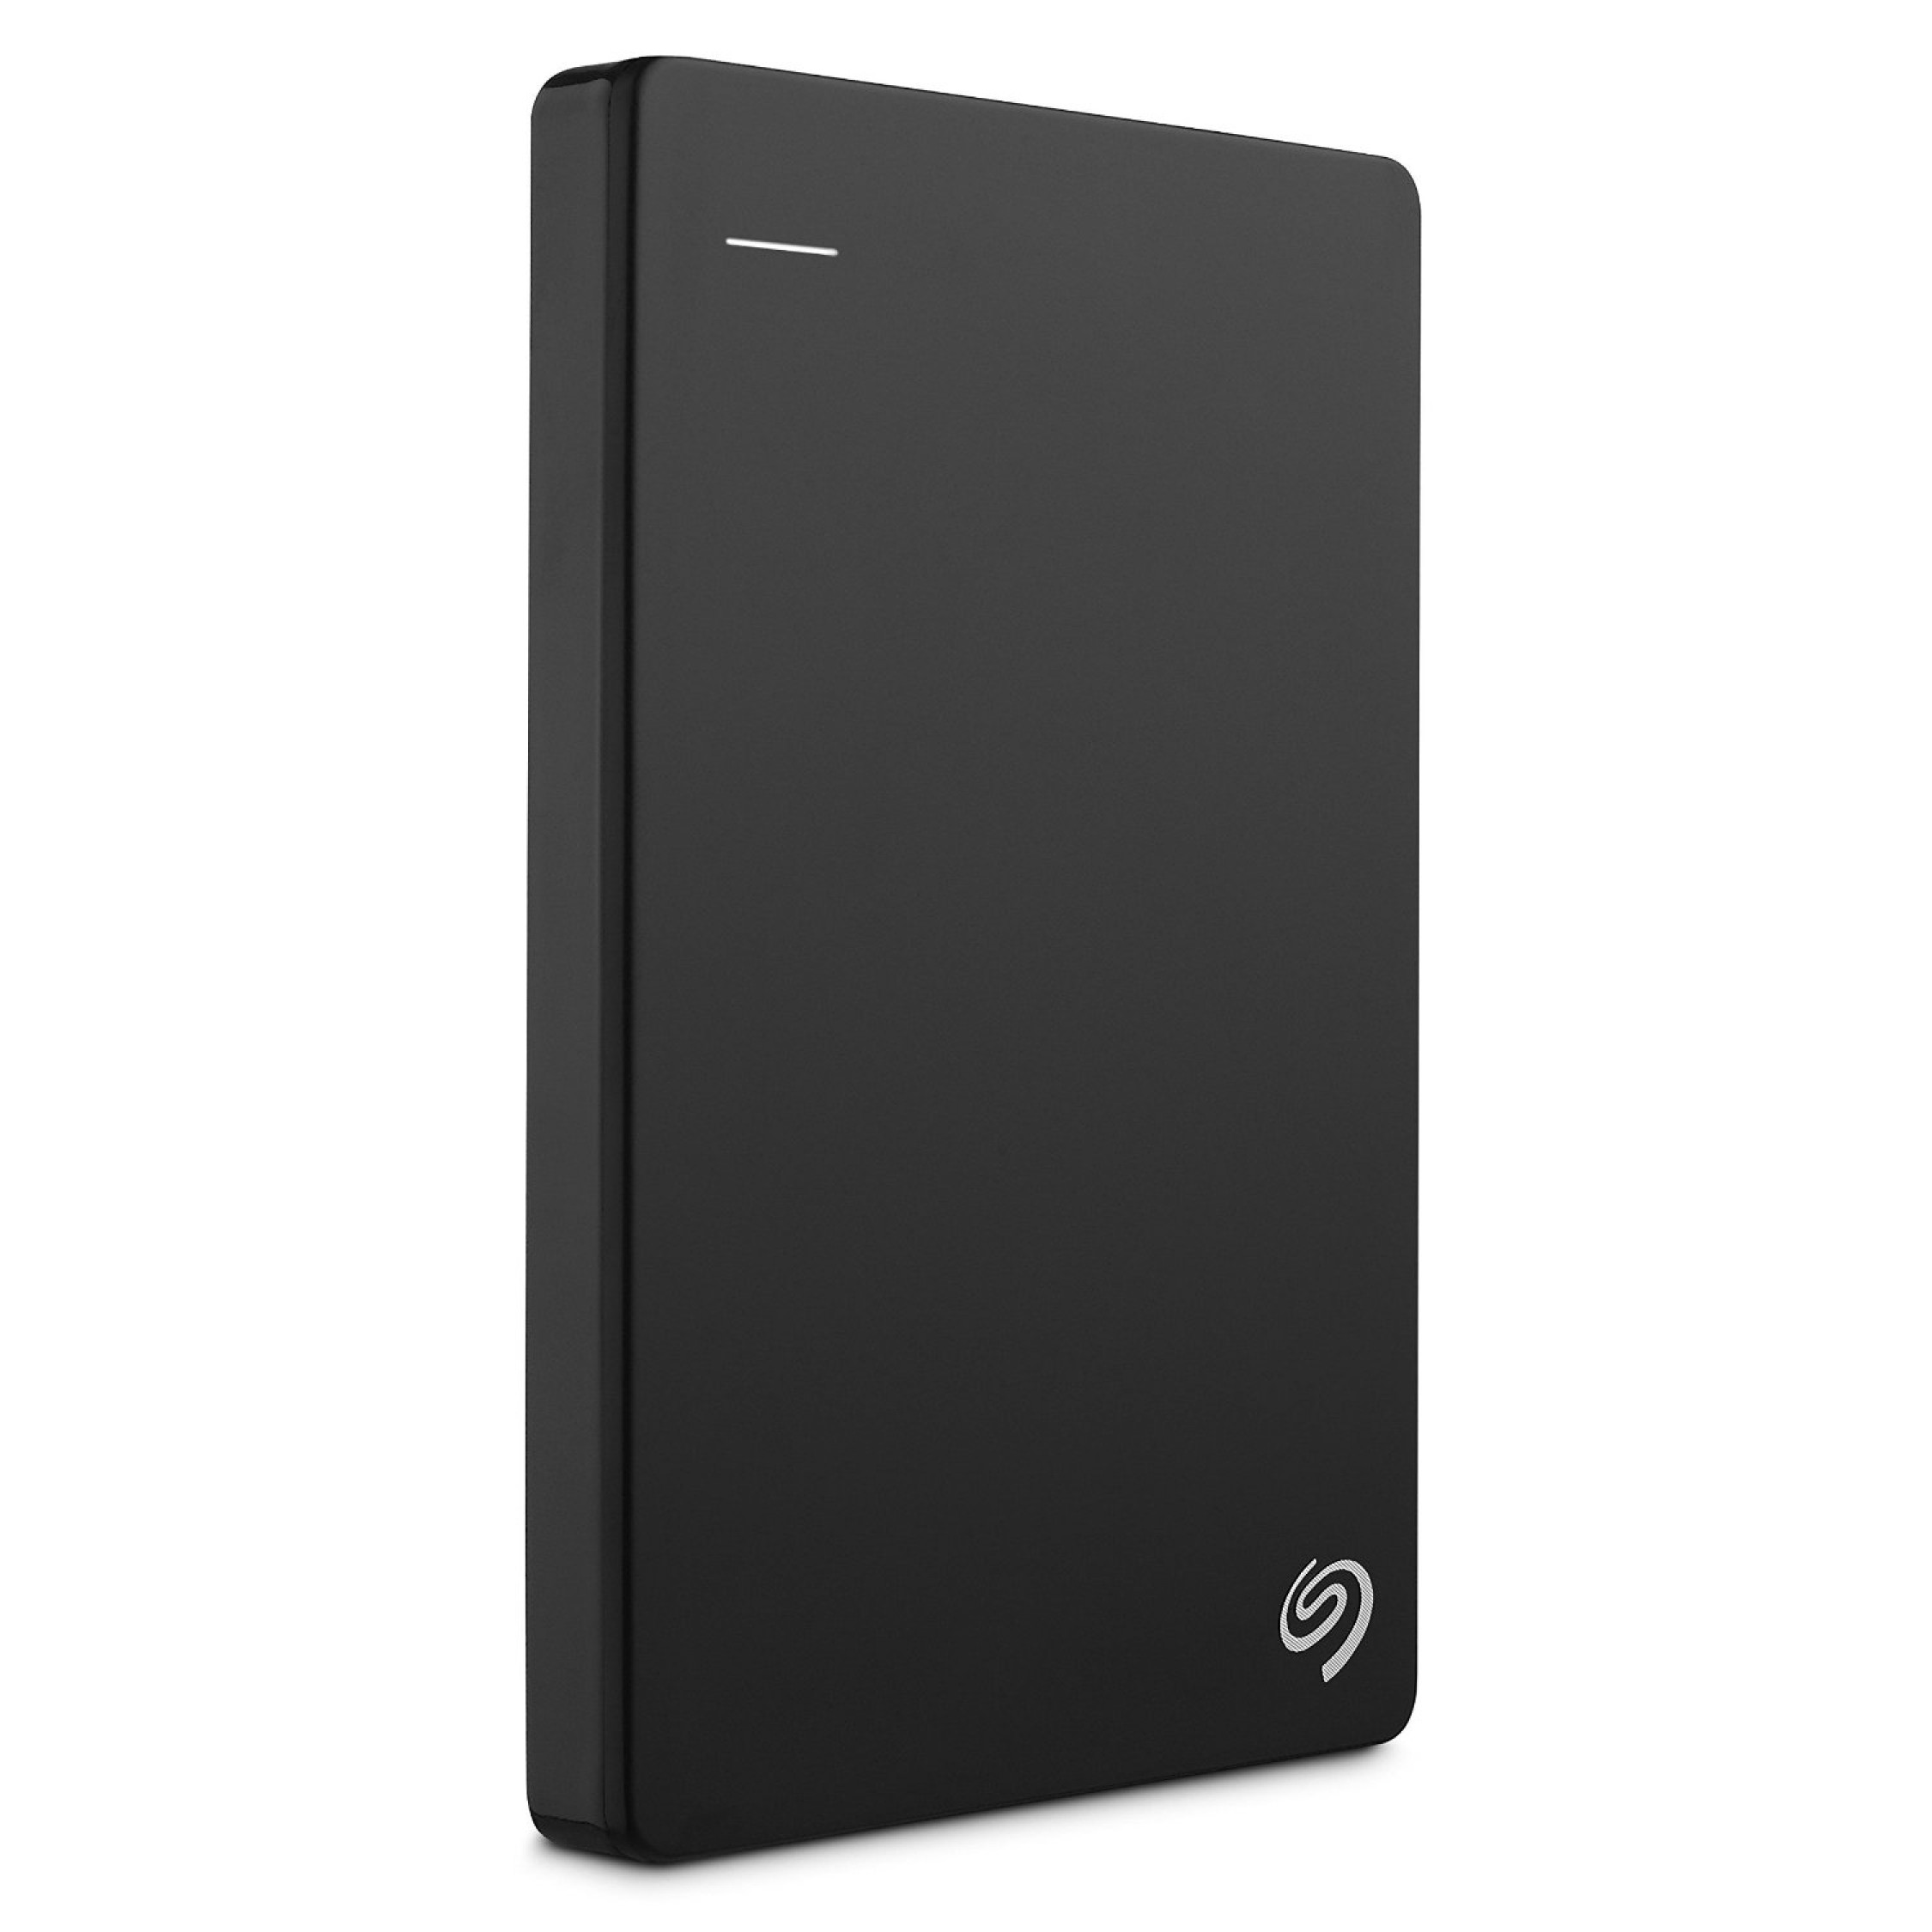 portable slim backup hhd external hard drive for mac pc laptop computer 1 tb ebay. Black Bedroom Furniture Sets. Home Design Ideas